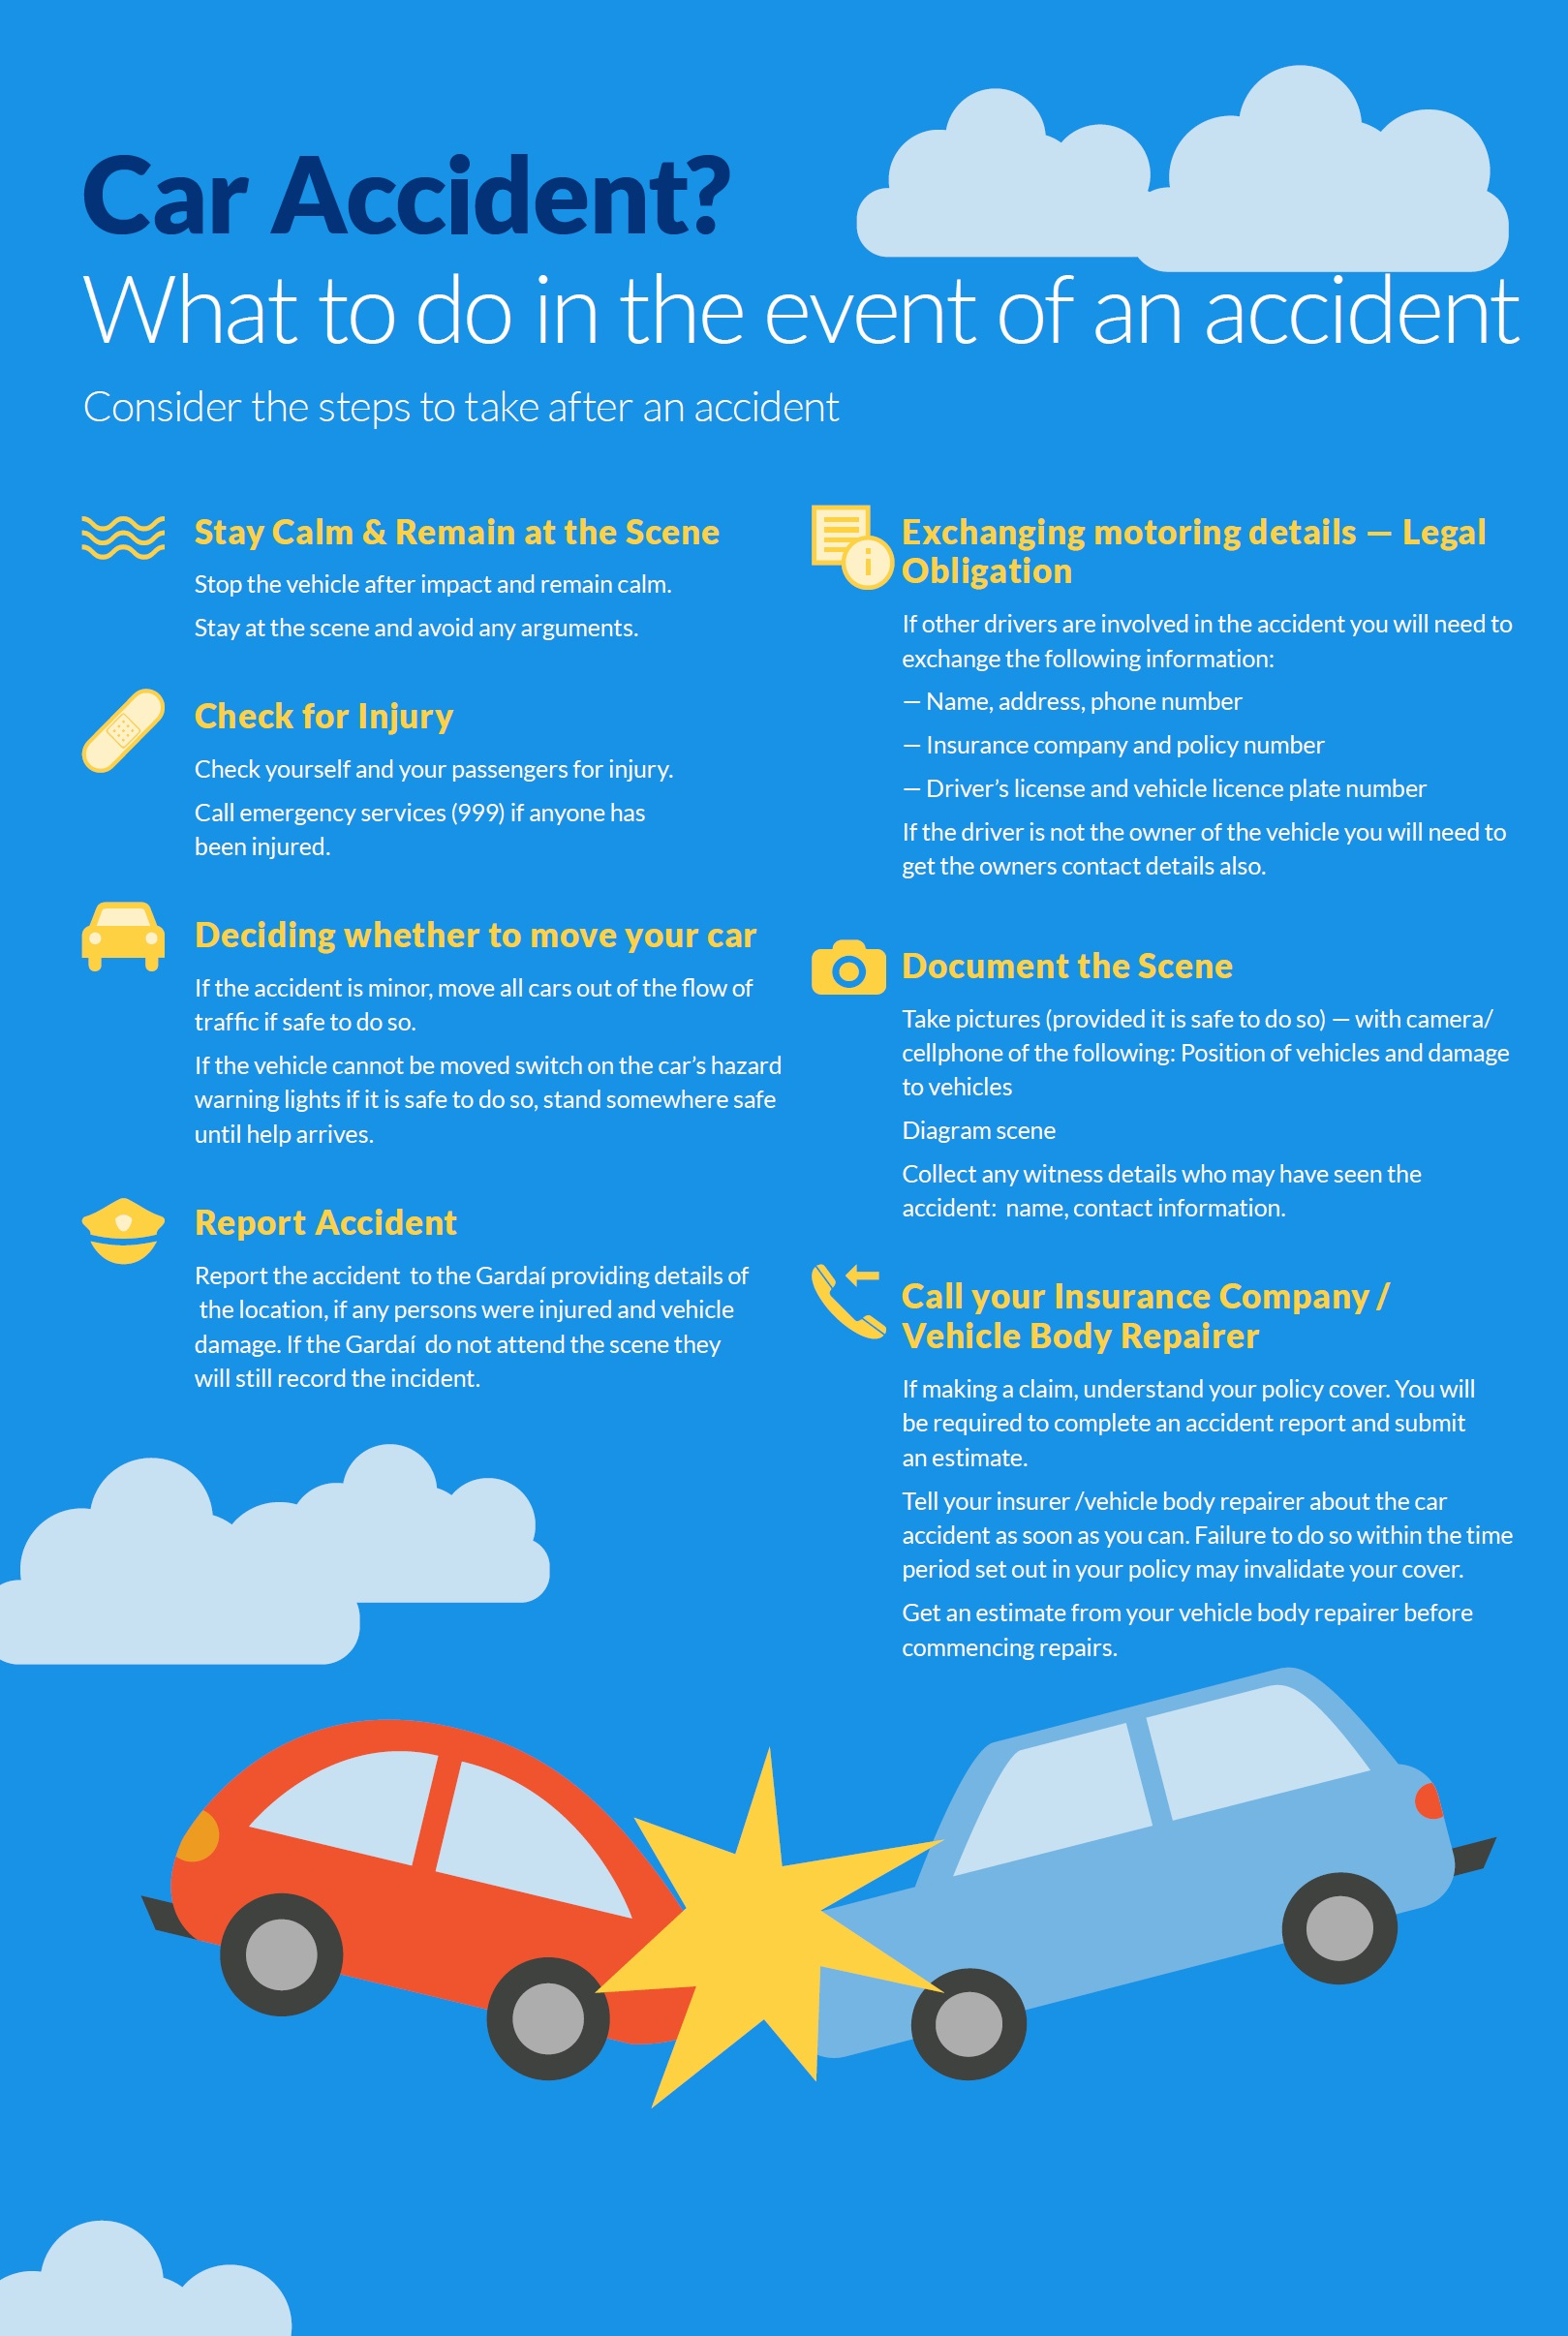 What to do if you have an accident